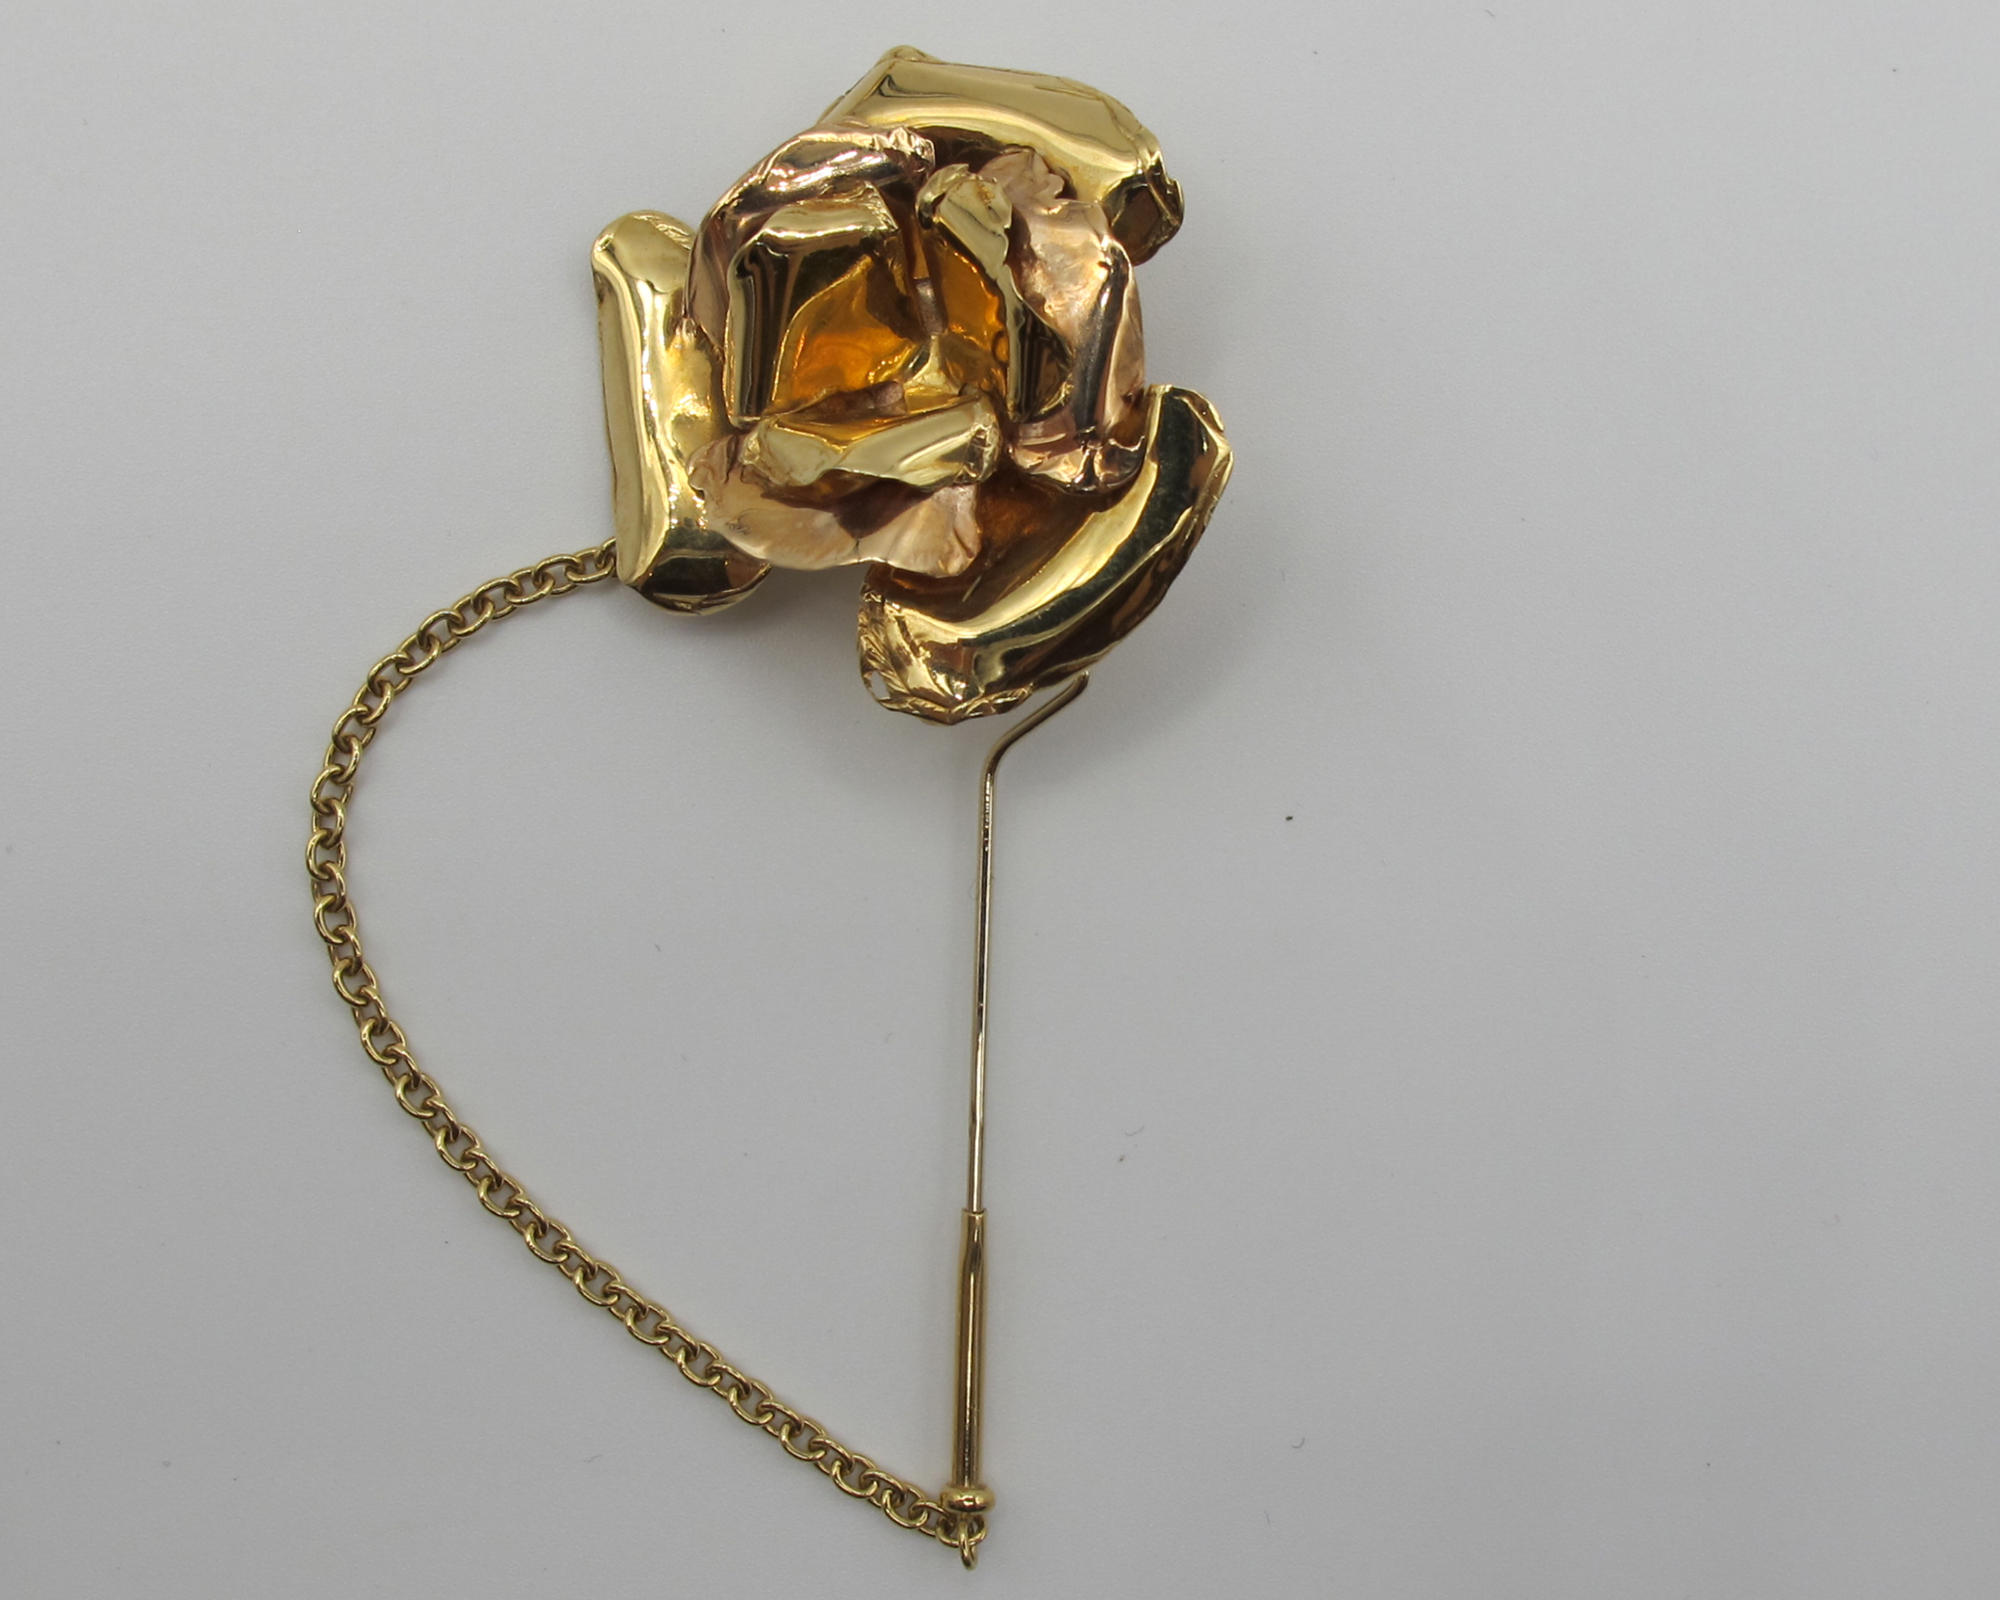 Three gold brooches